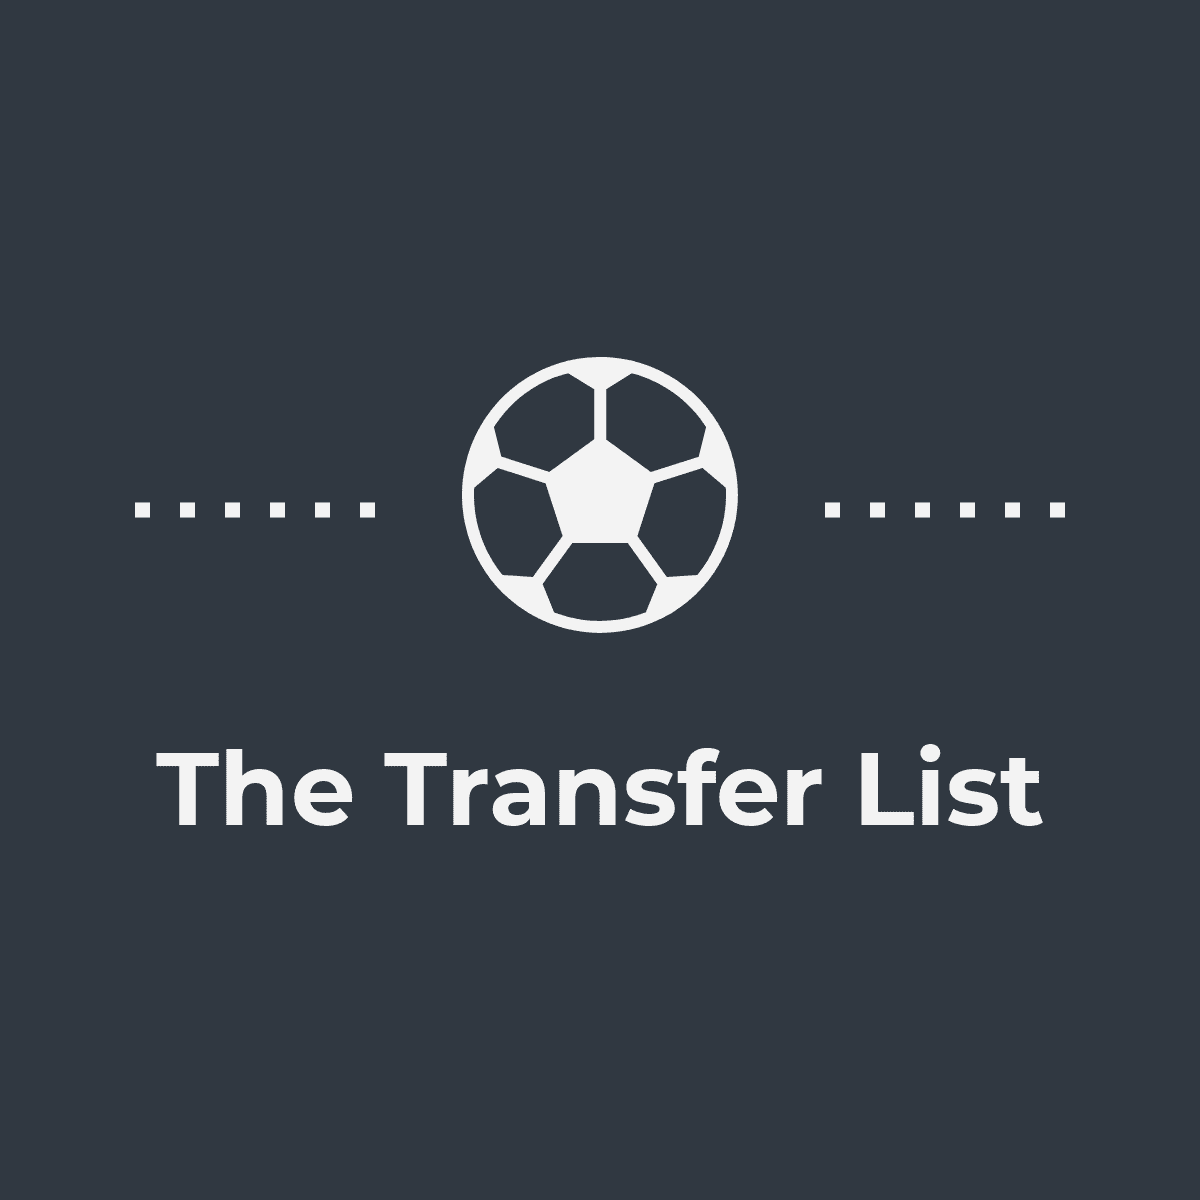 The Transfer List Logo